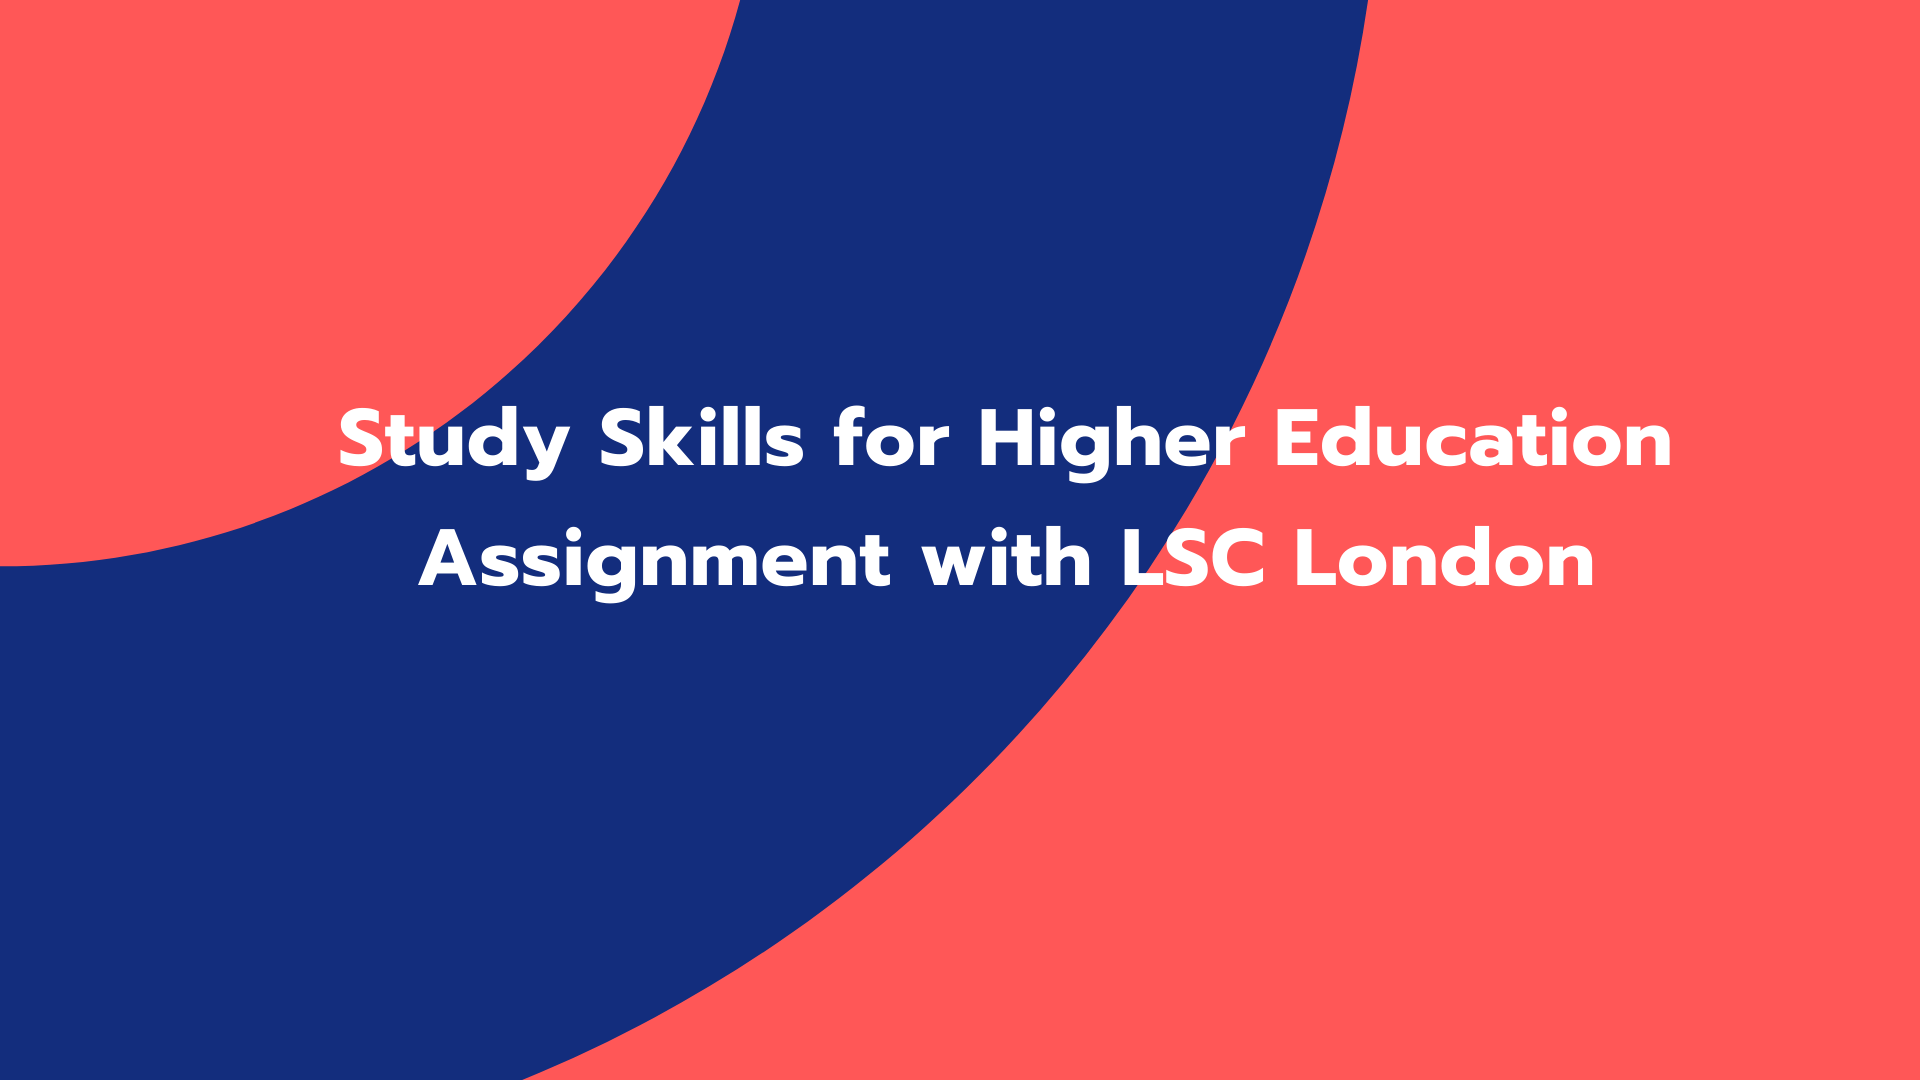 Study Skills for Higher Education Assignment with LSC London